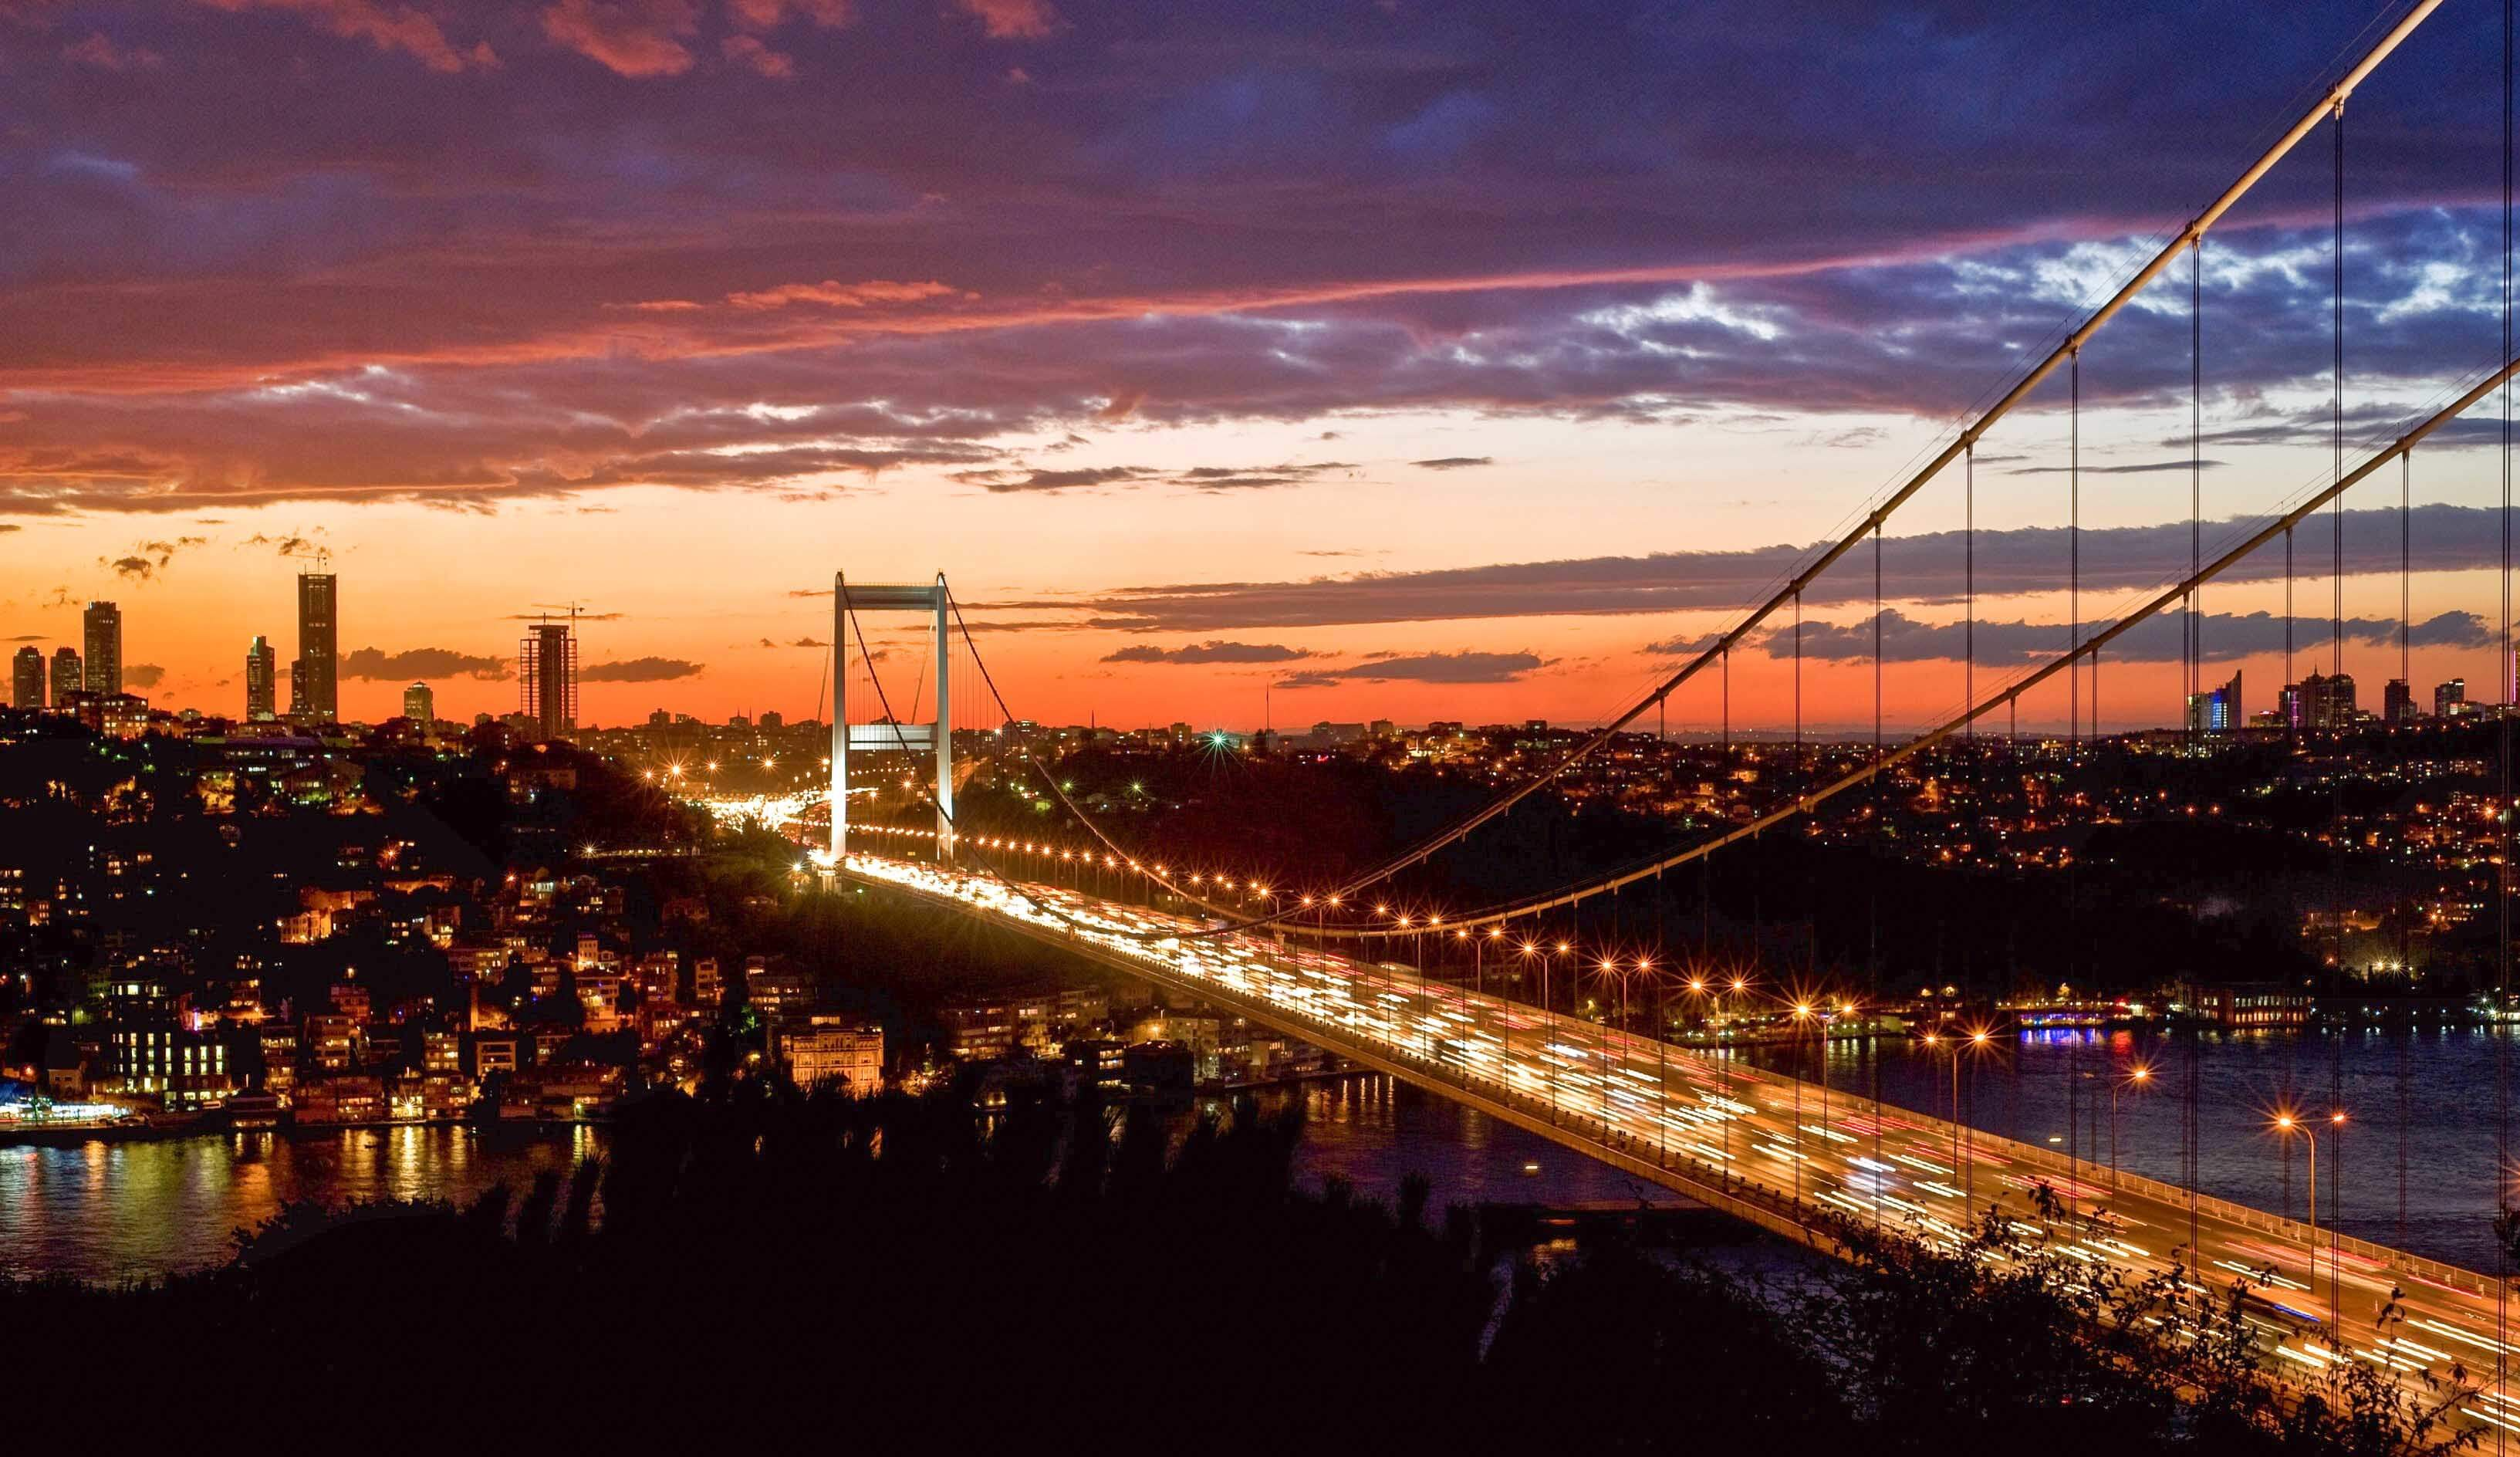 HOW ABOUT ISTANBUL